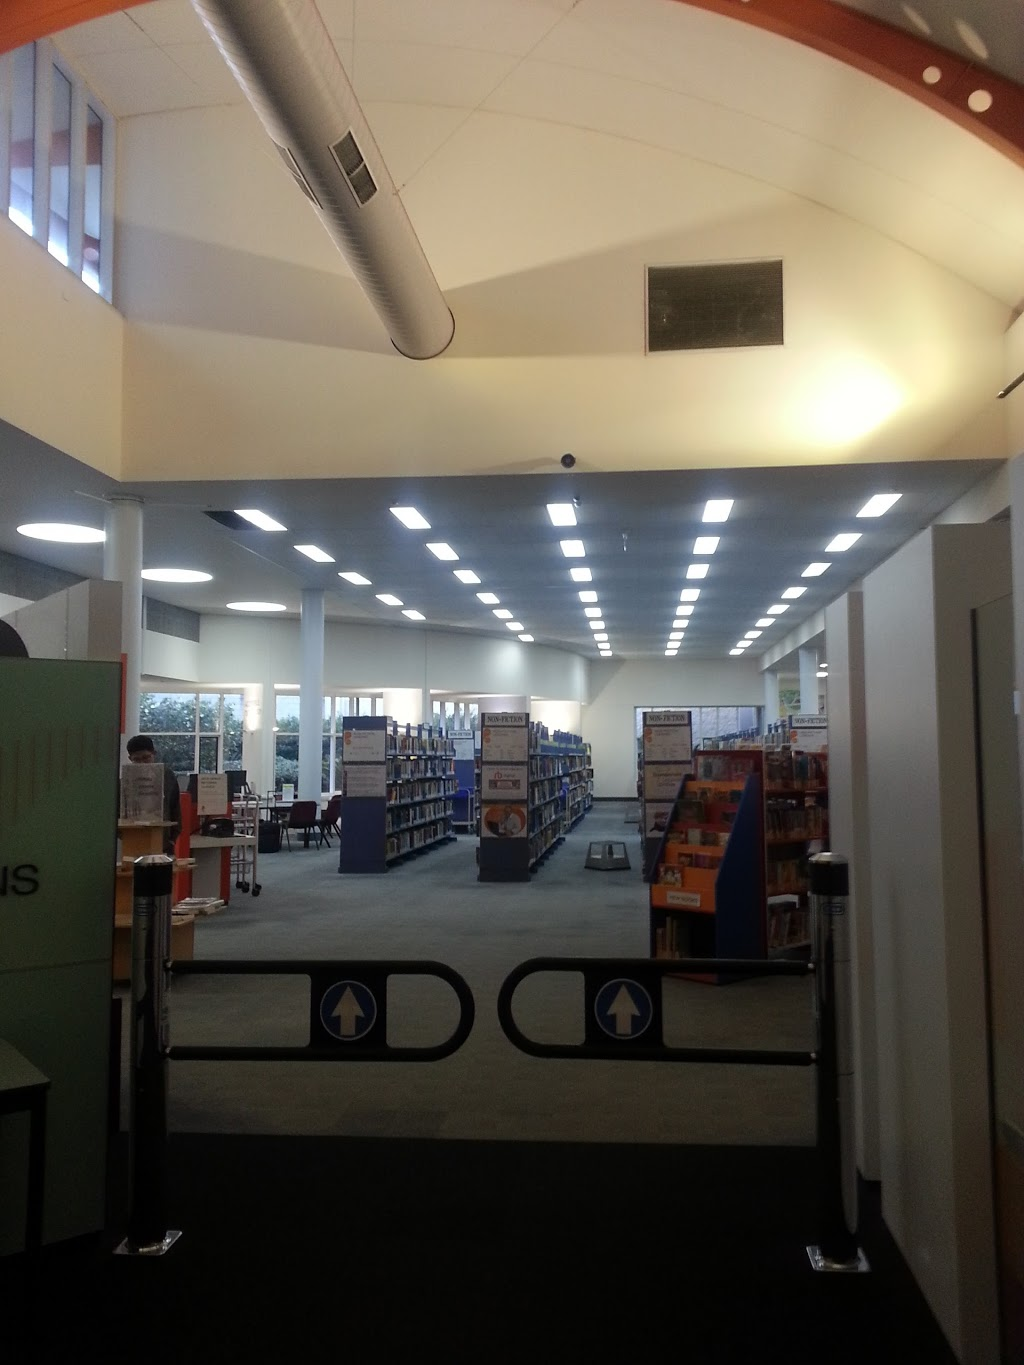 Penrith City Library | library | 601 High St, Penrith NSW 2750, Australia | 0247327891 OR +61 2 4732 7891